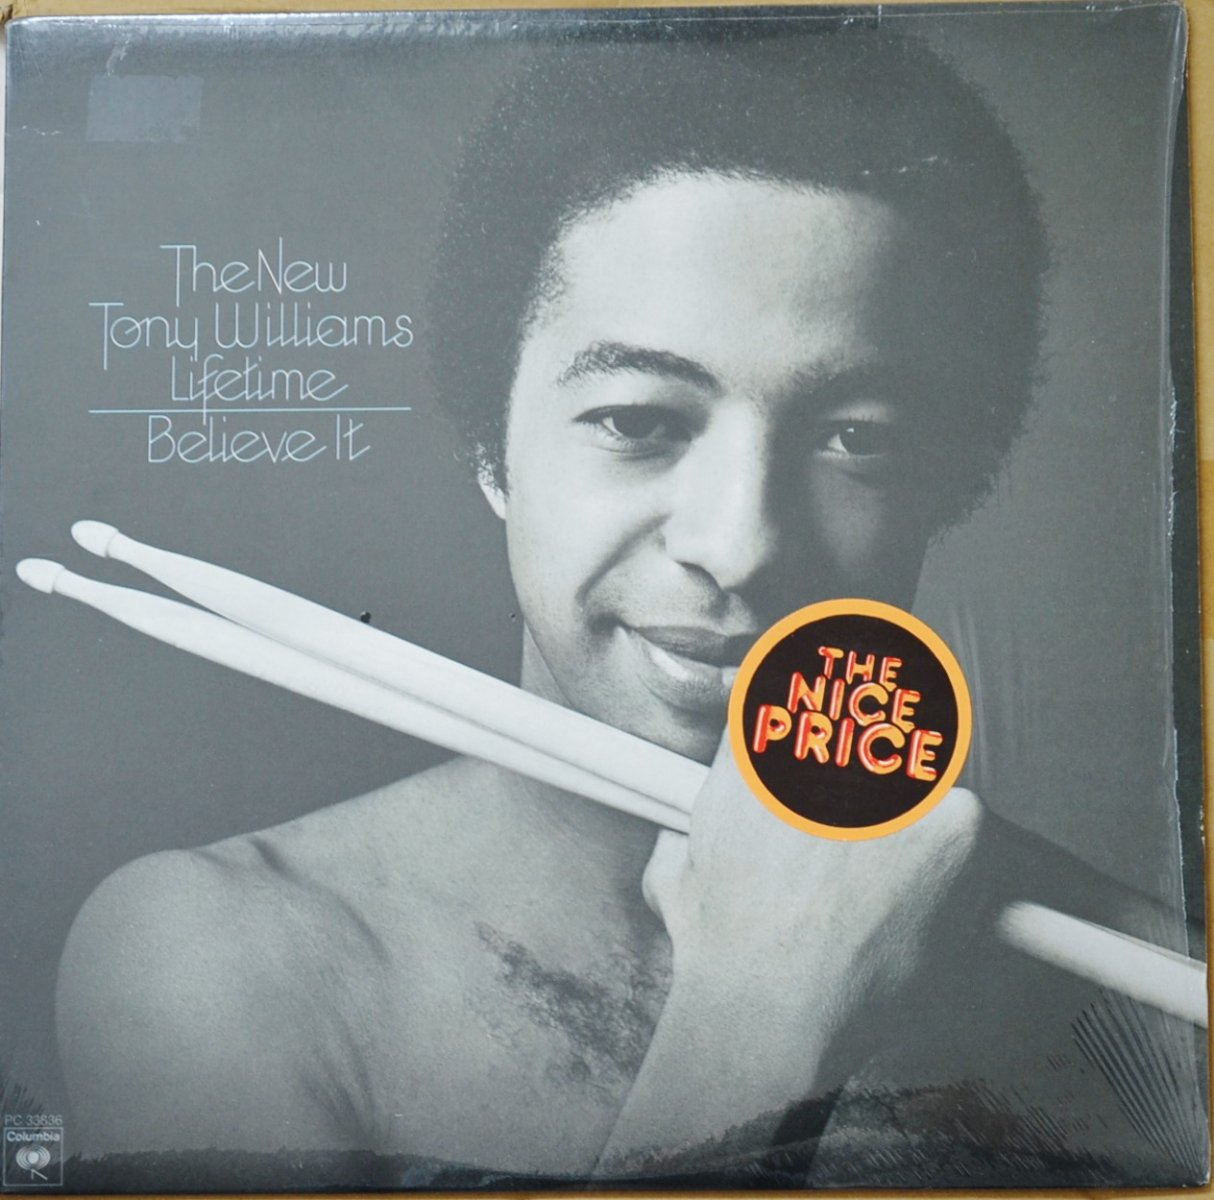 THE NEW TONY WILLIAMS LIFETIME / BELIEVE IT (LP)